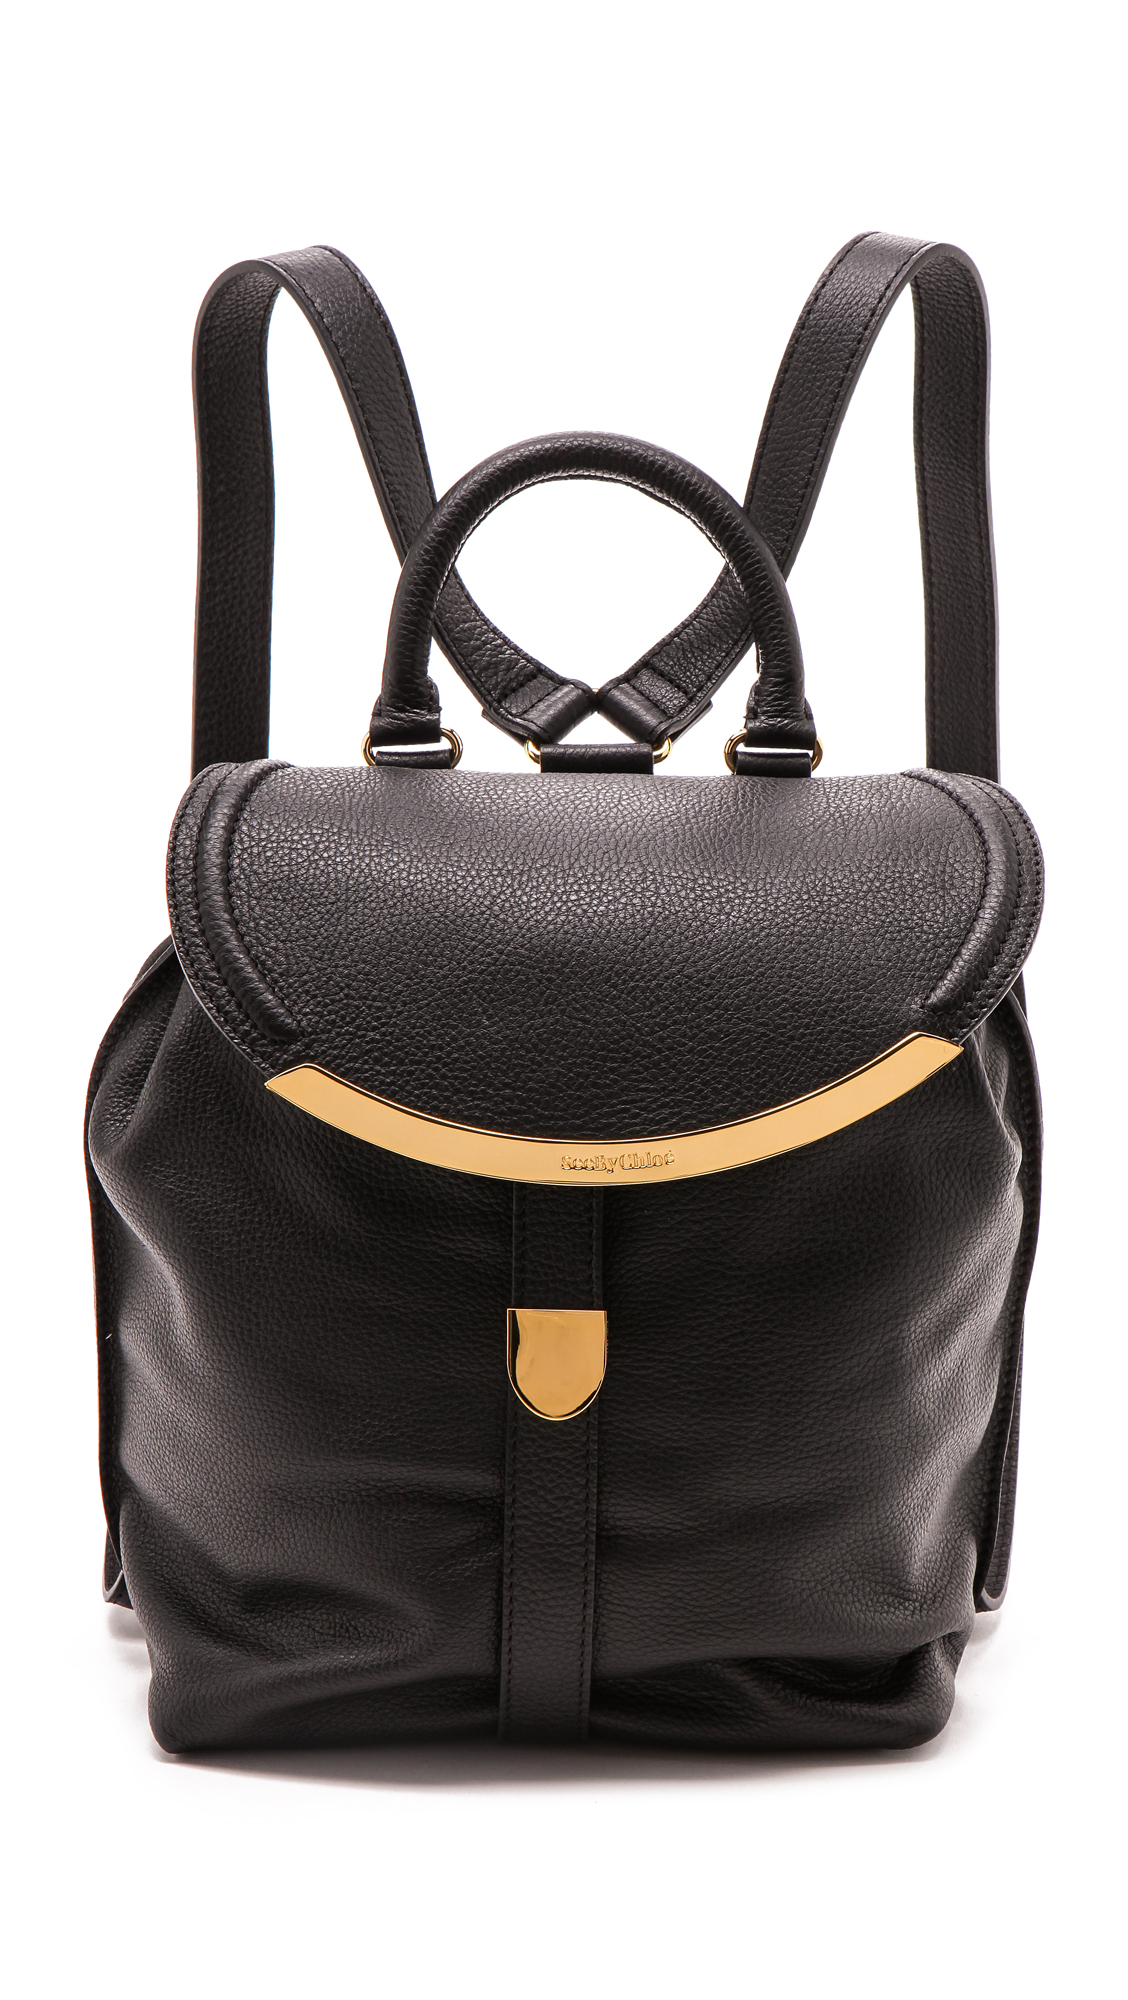 359ee12e9e02 See by Chloe Lizzie Backpack